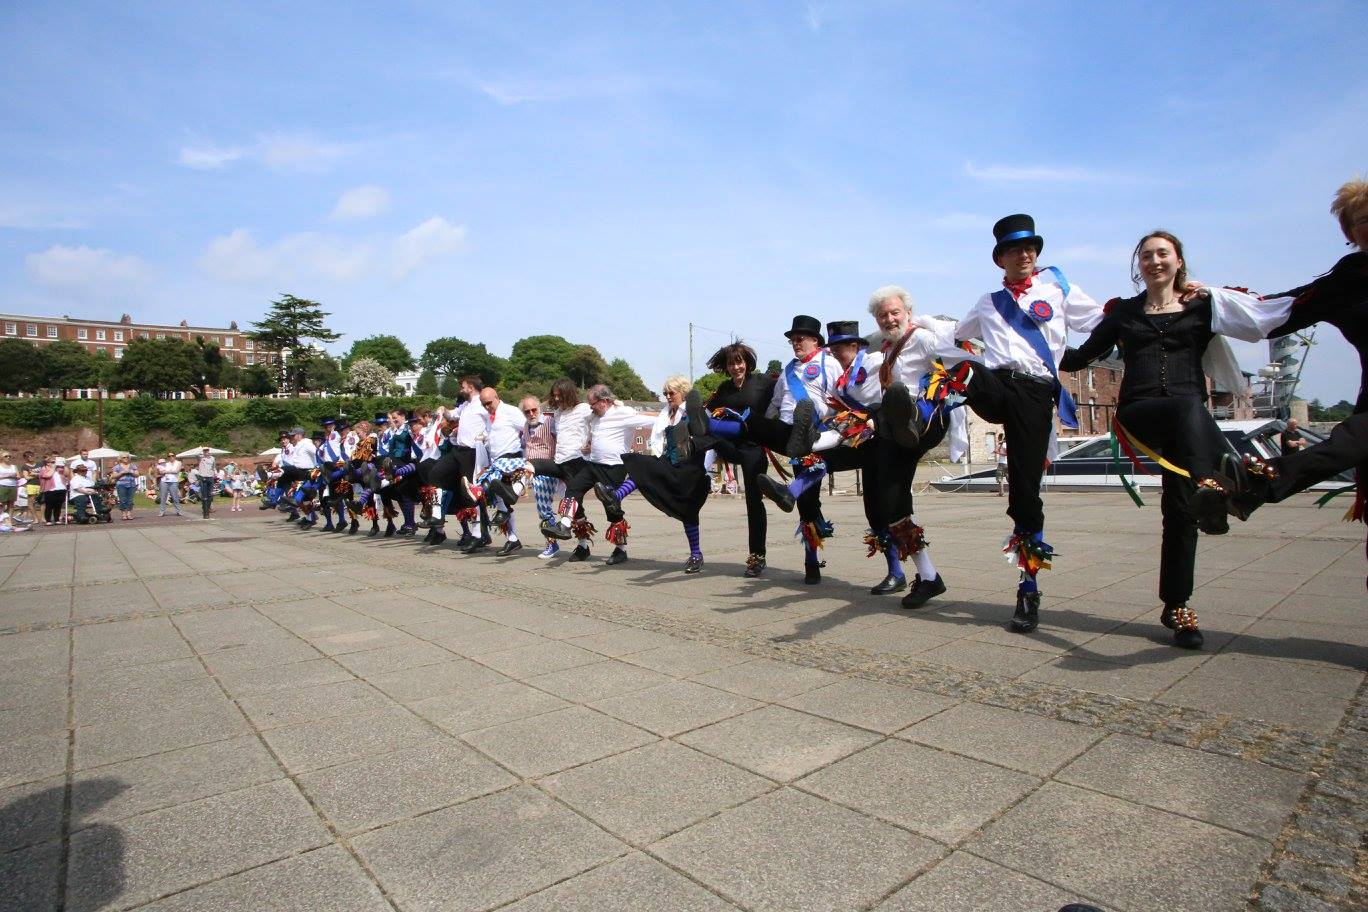 Group of morris dancers in a line, dancing